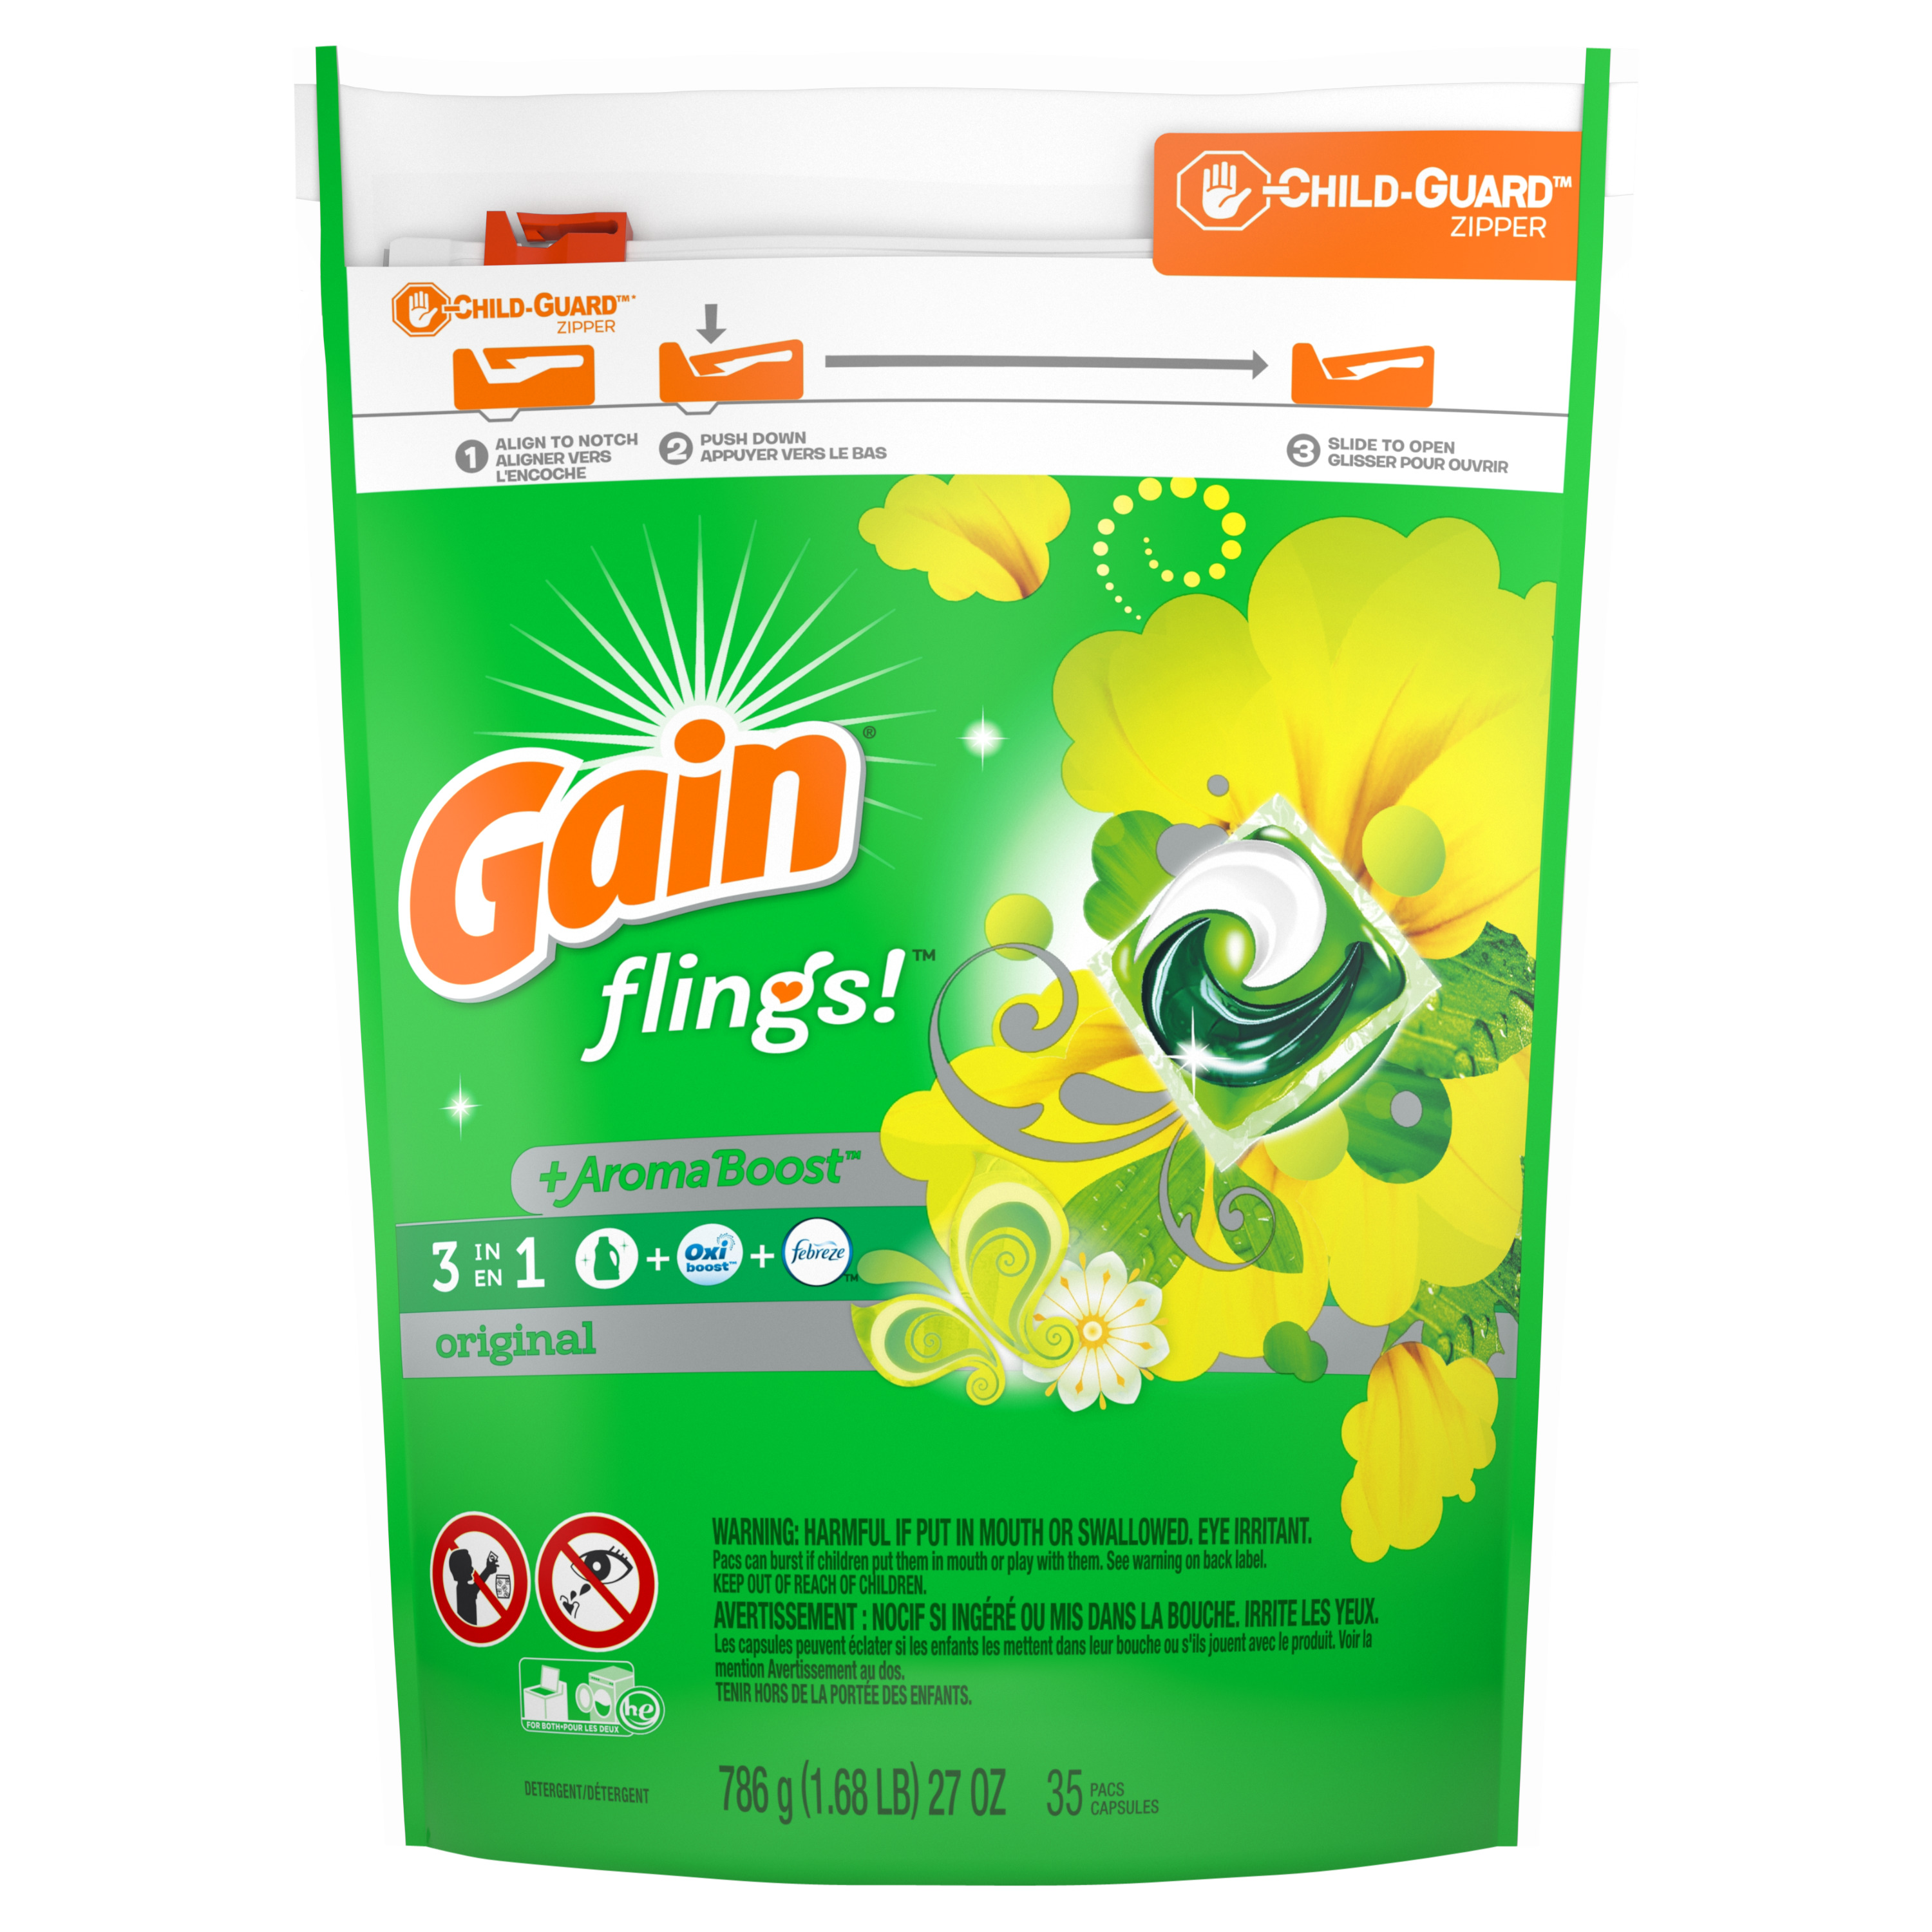 Gain flings! + Aroma Boost Laundry Detergent Pacs, Original, 35 Count